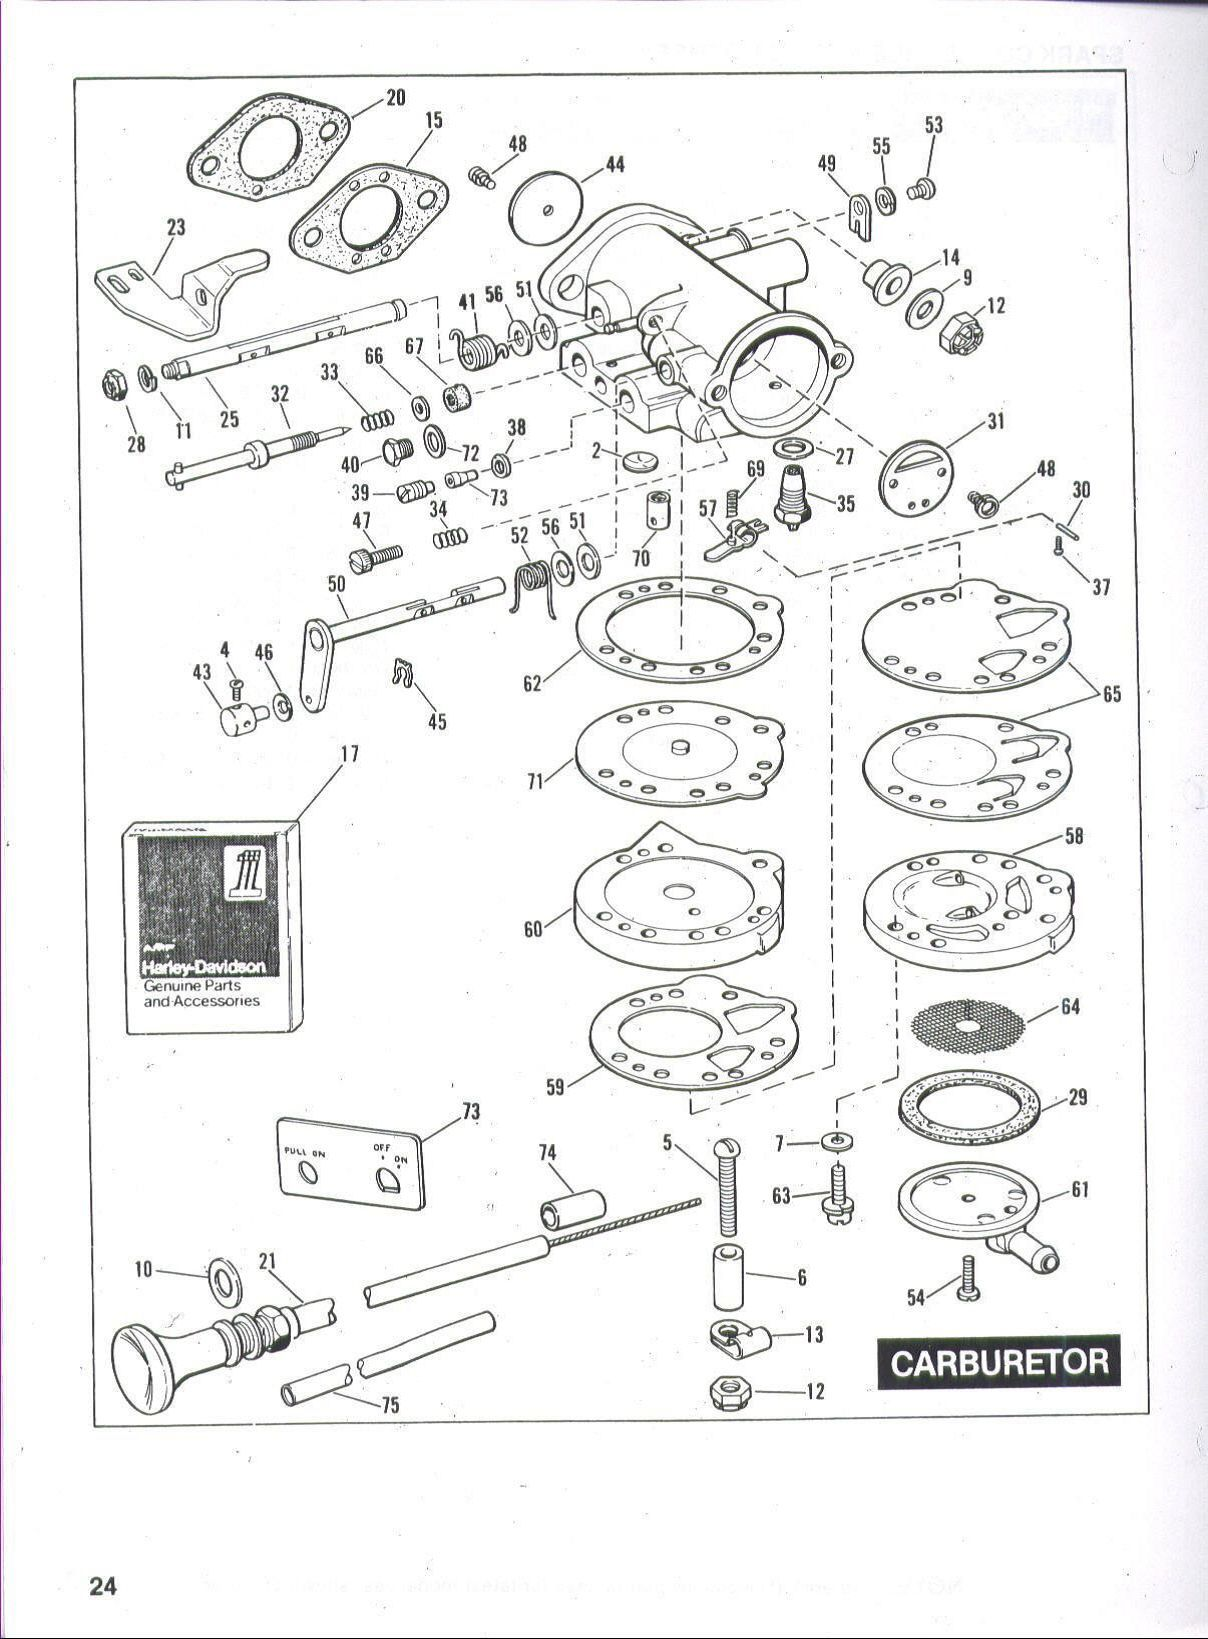 harley davidson carburetor diagram wiring diagram week 94 harley carburetor diagram [ 1208 x 1639 Pixel ]